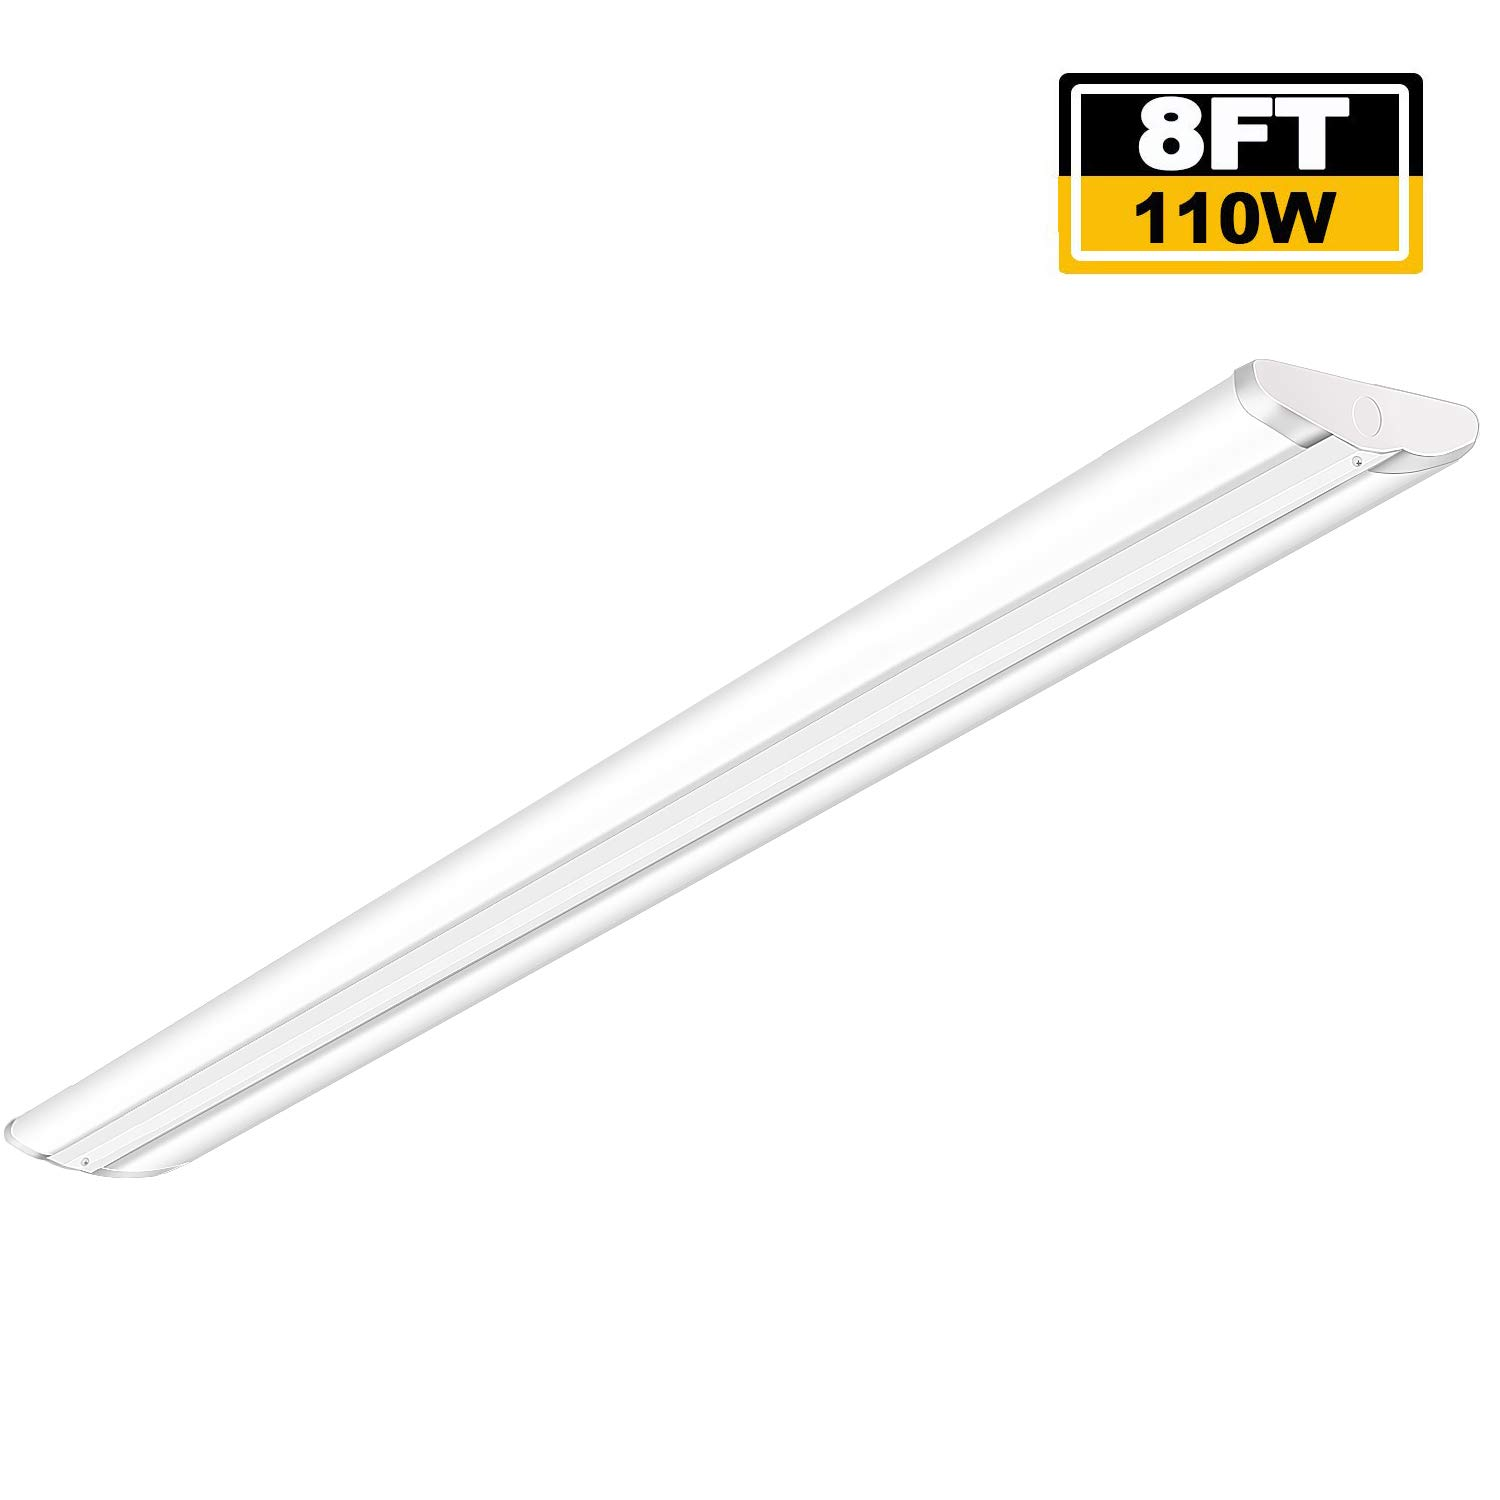 Antlux 8ft Led Shop Lights Low Bay Led Lighting Commercial